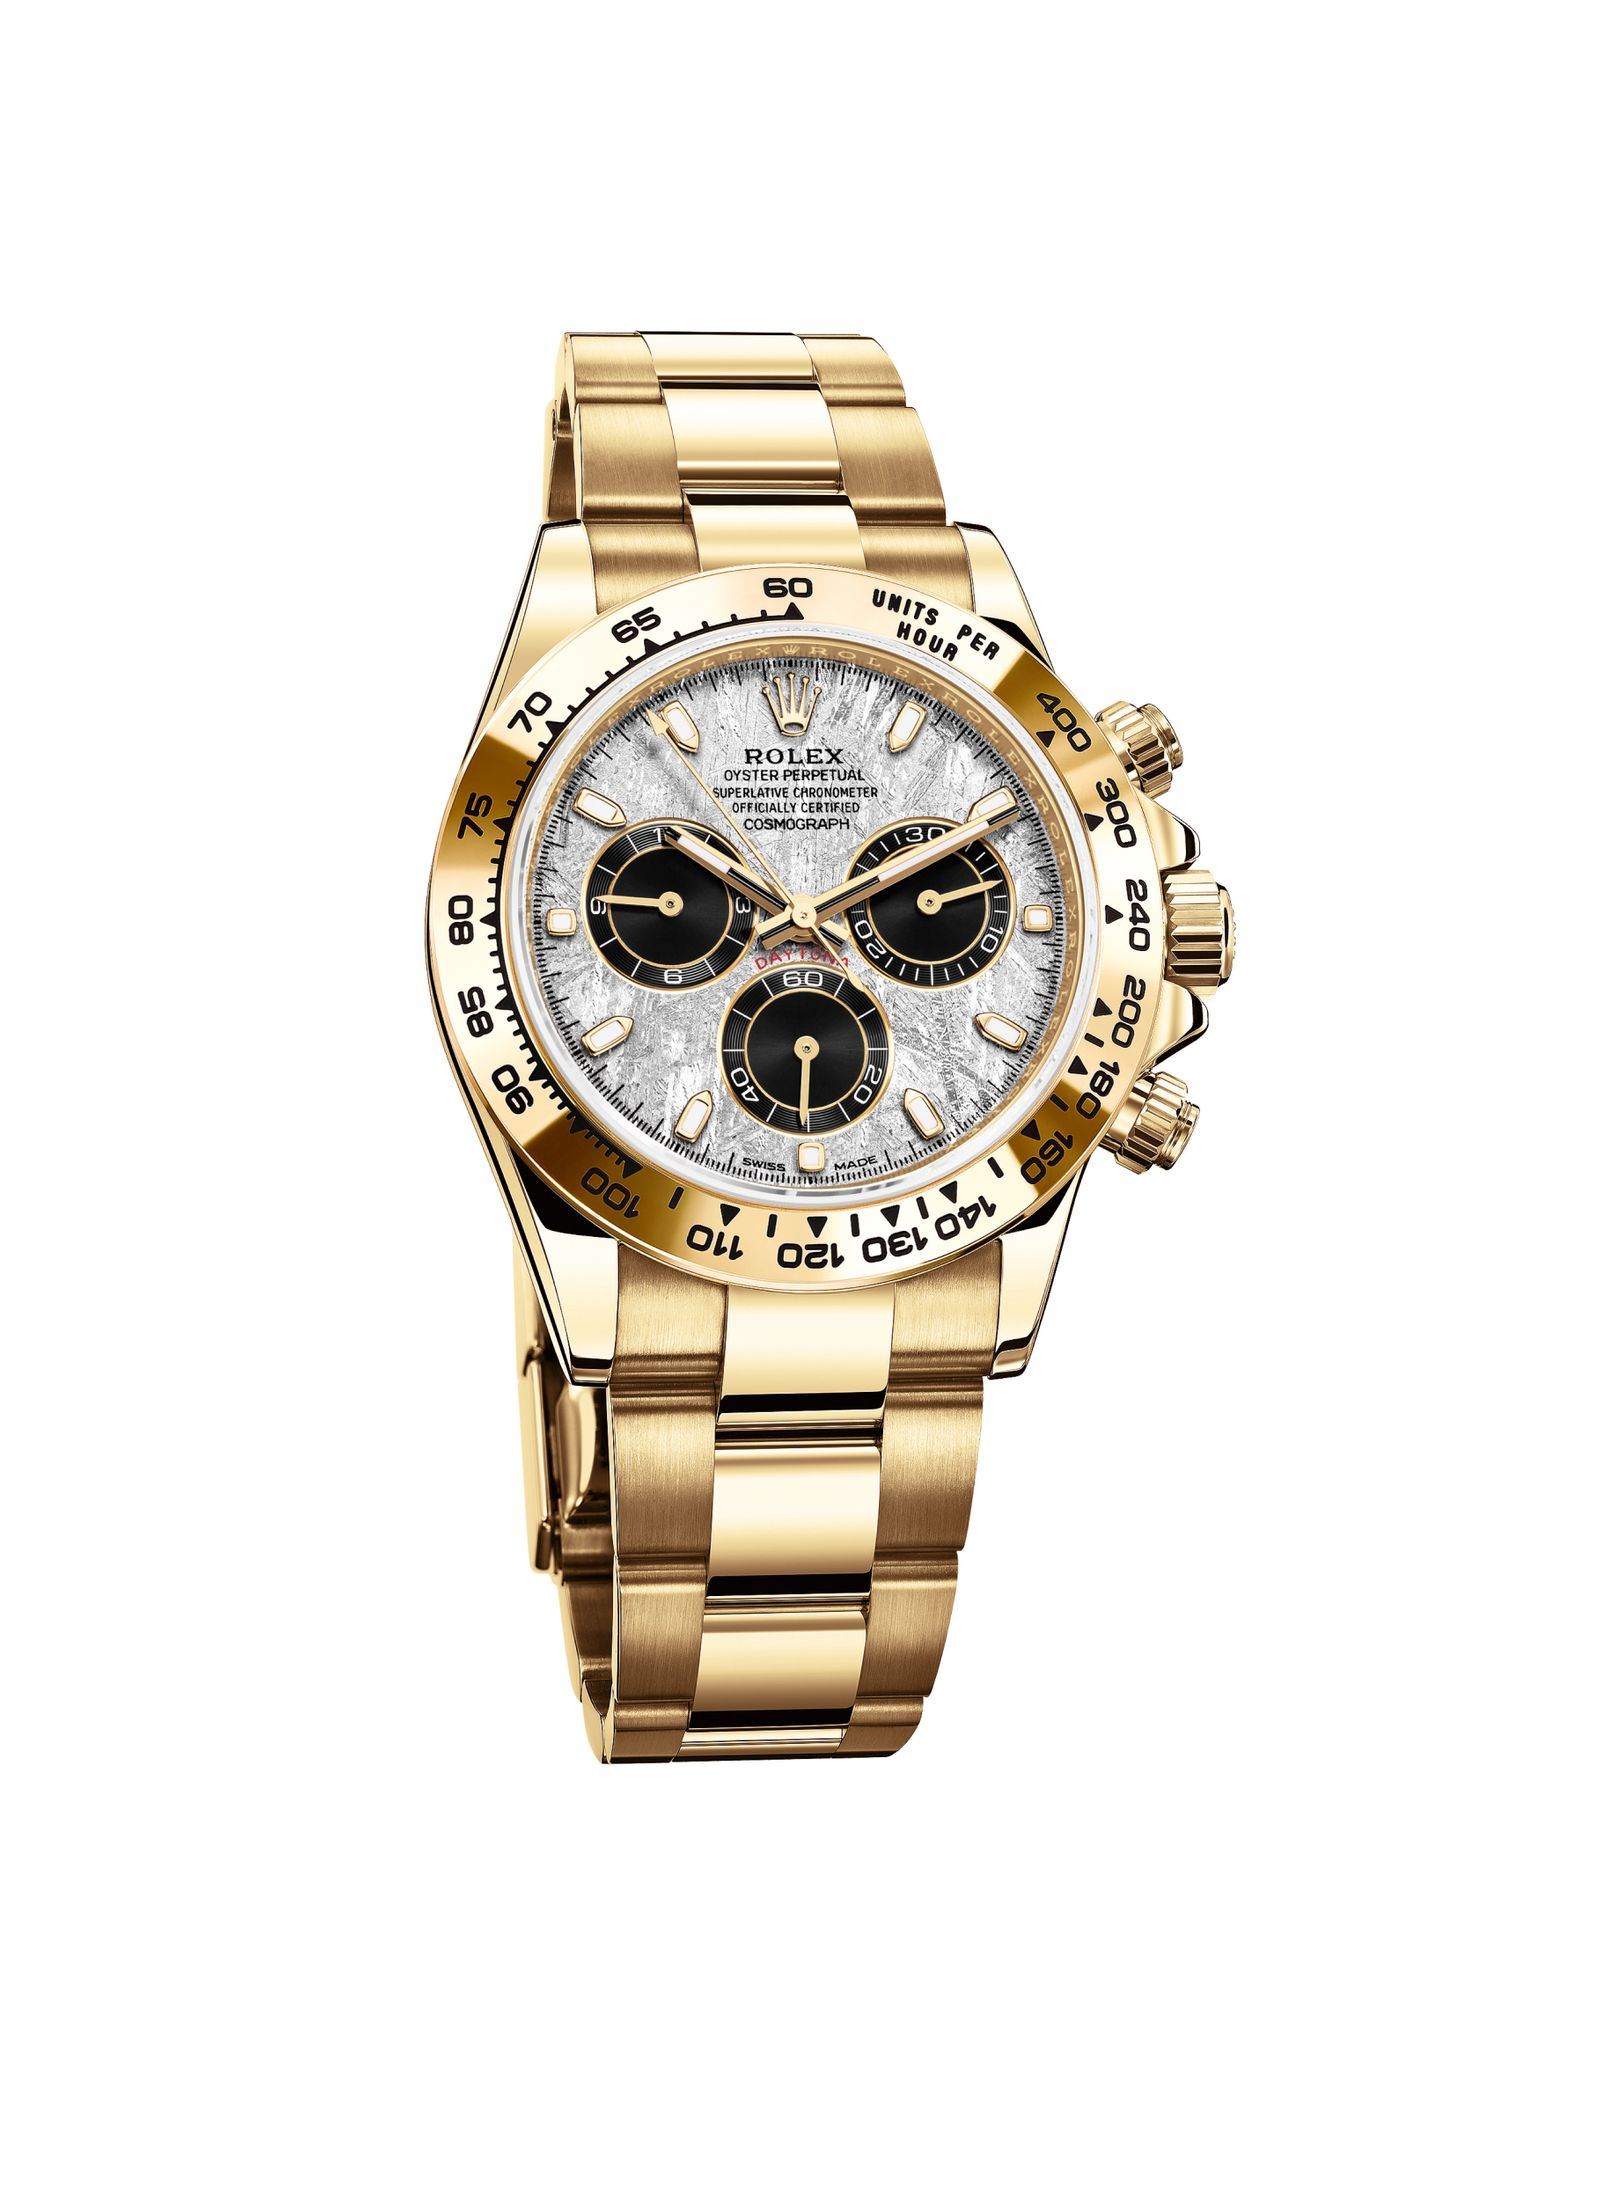 Rolex / Oyster Perpetual Cosmograph Daytona / M116508-0015